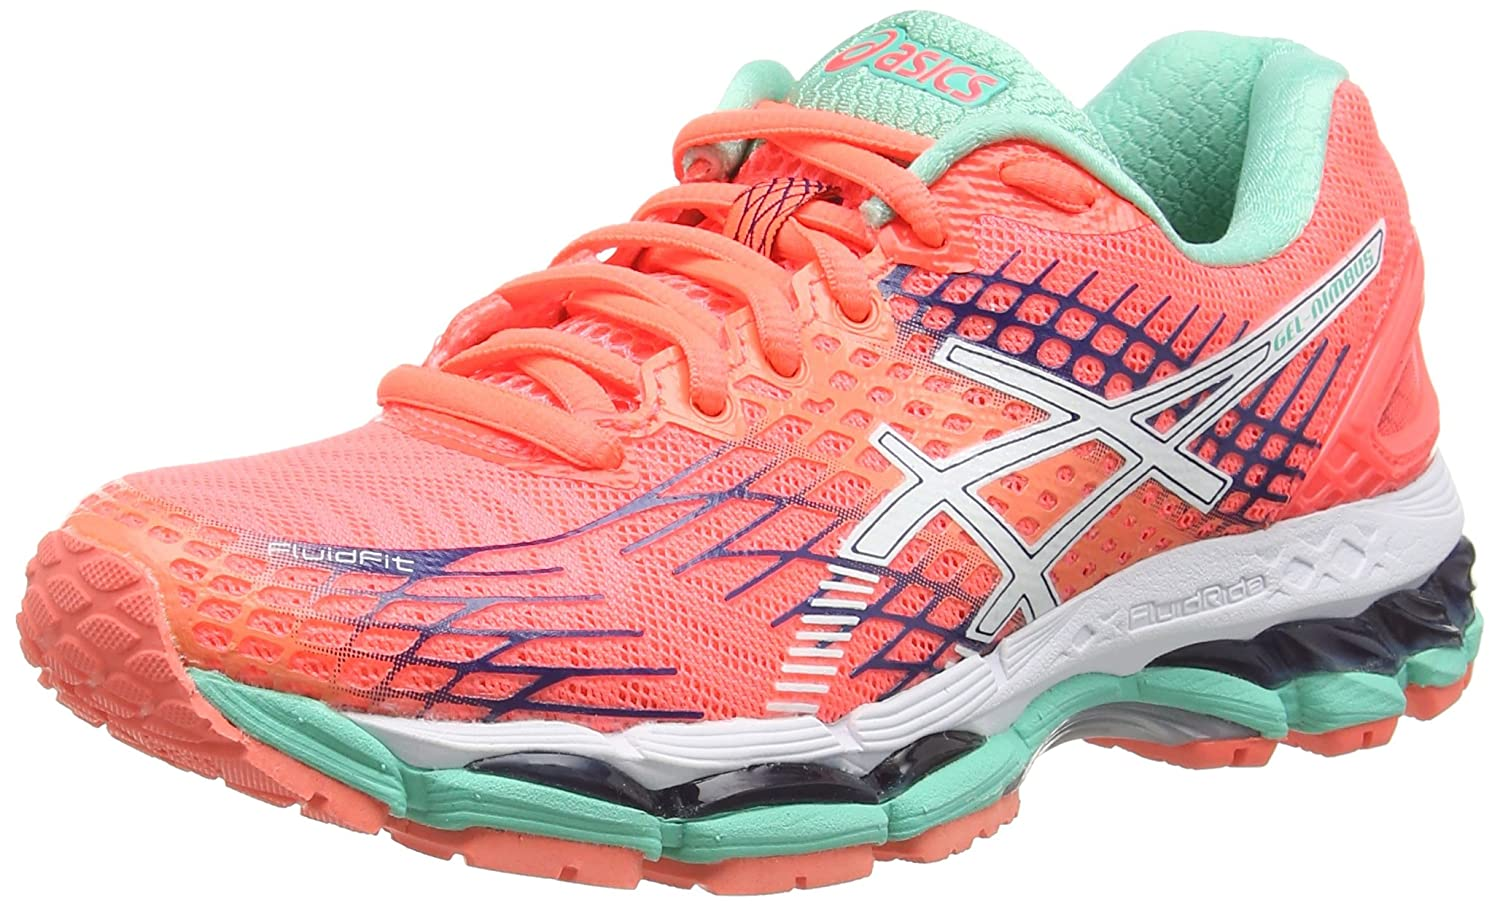 newest 83d8a 384ee ASICS Gel-Nimbus 17, Women's Running Shoes: Amazon.co.uk ...